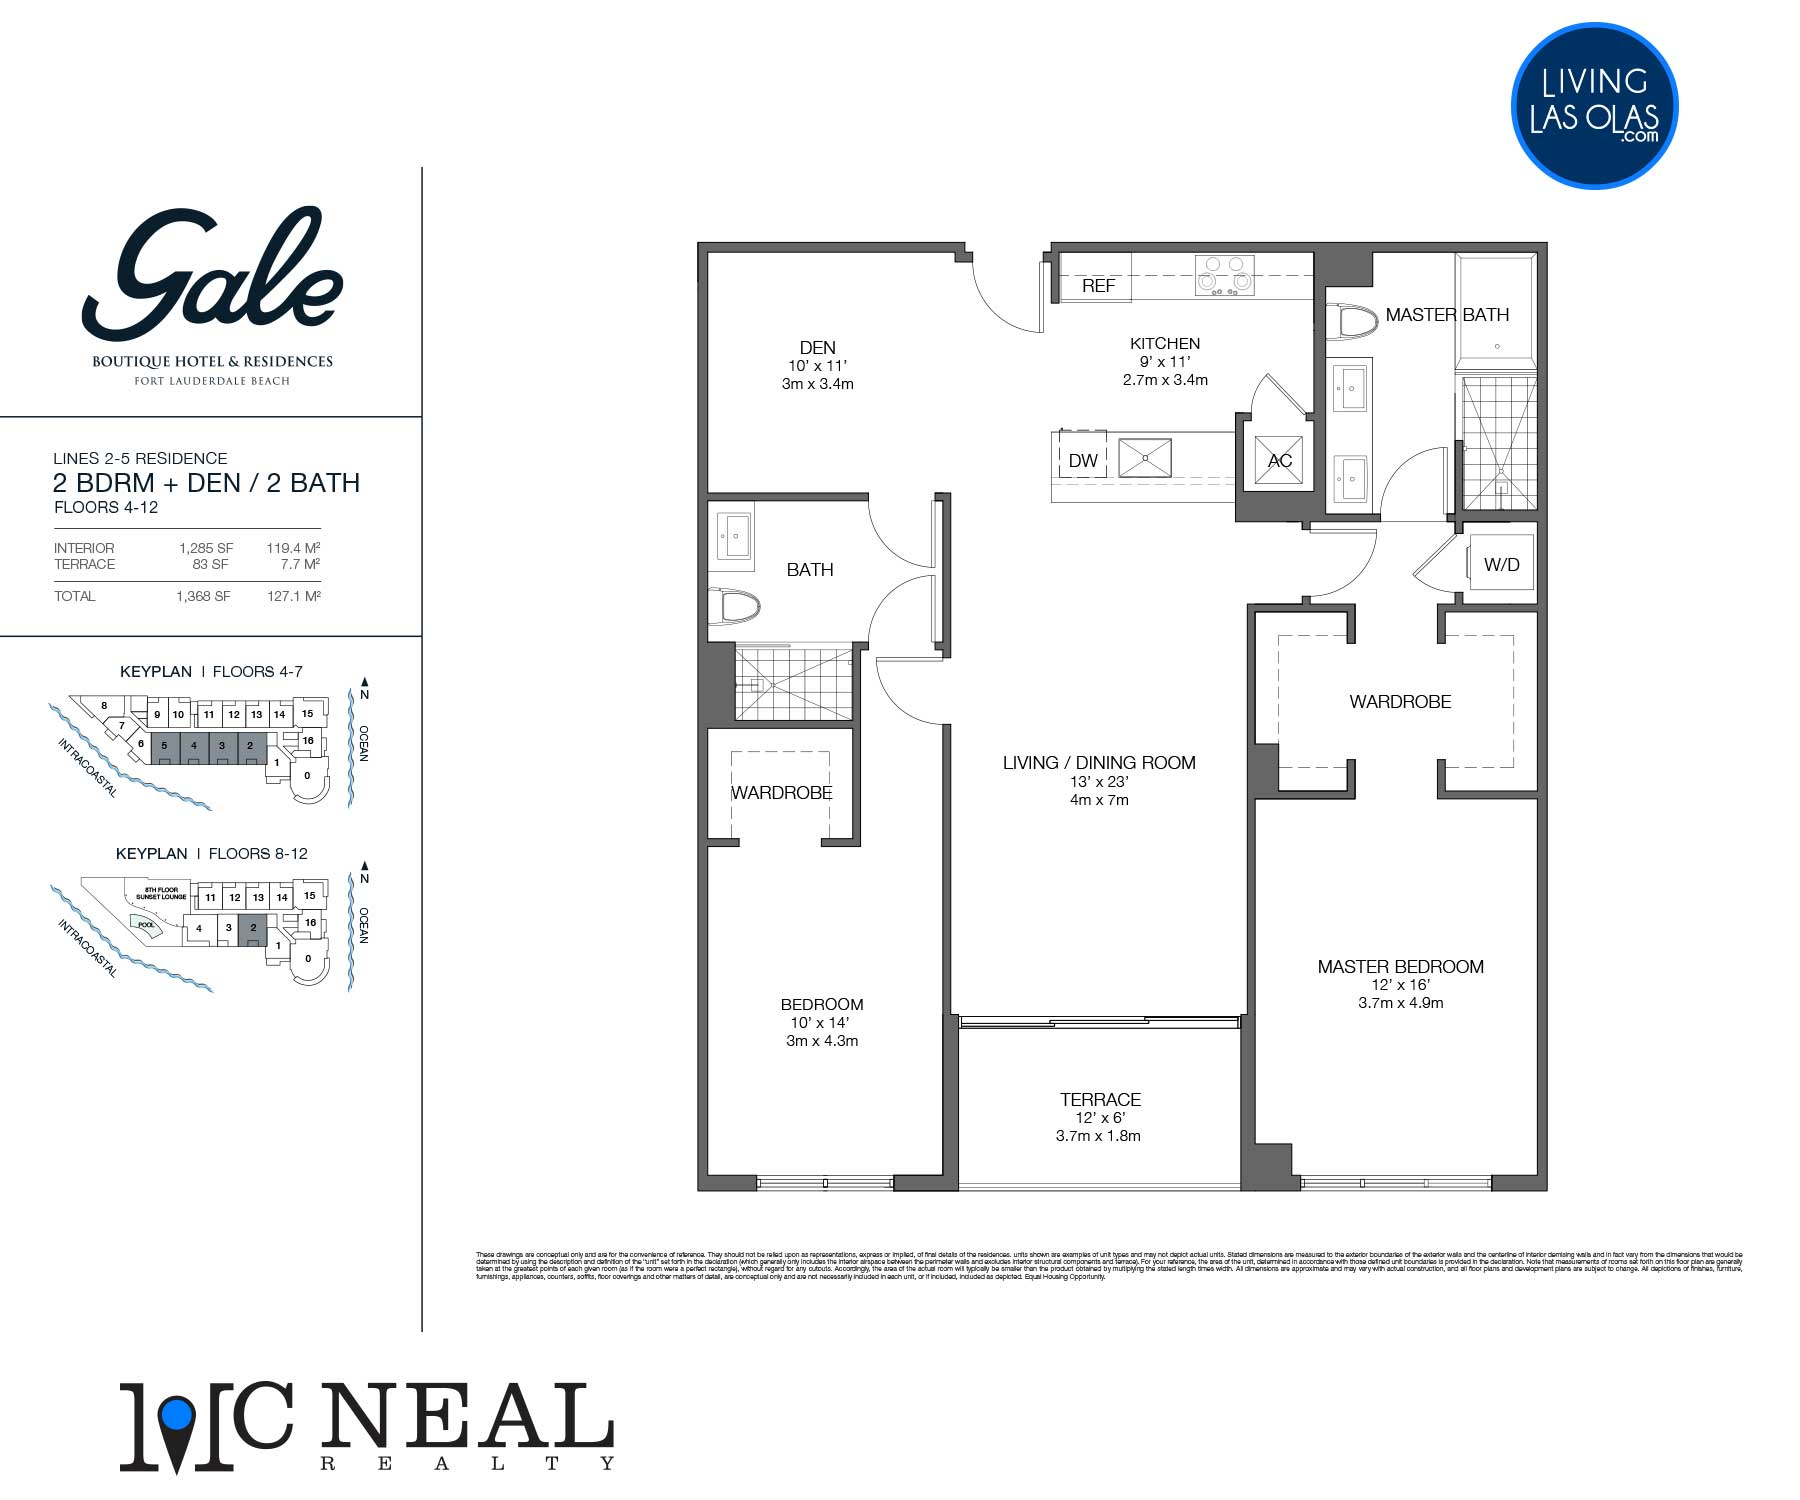 Tiffany House Condos Floor Plans Line 2-5